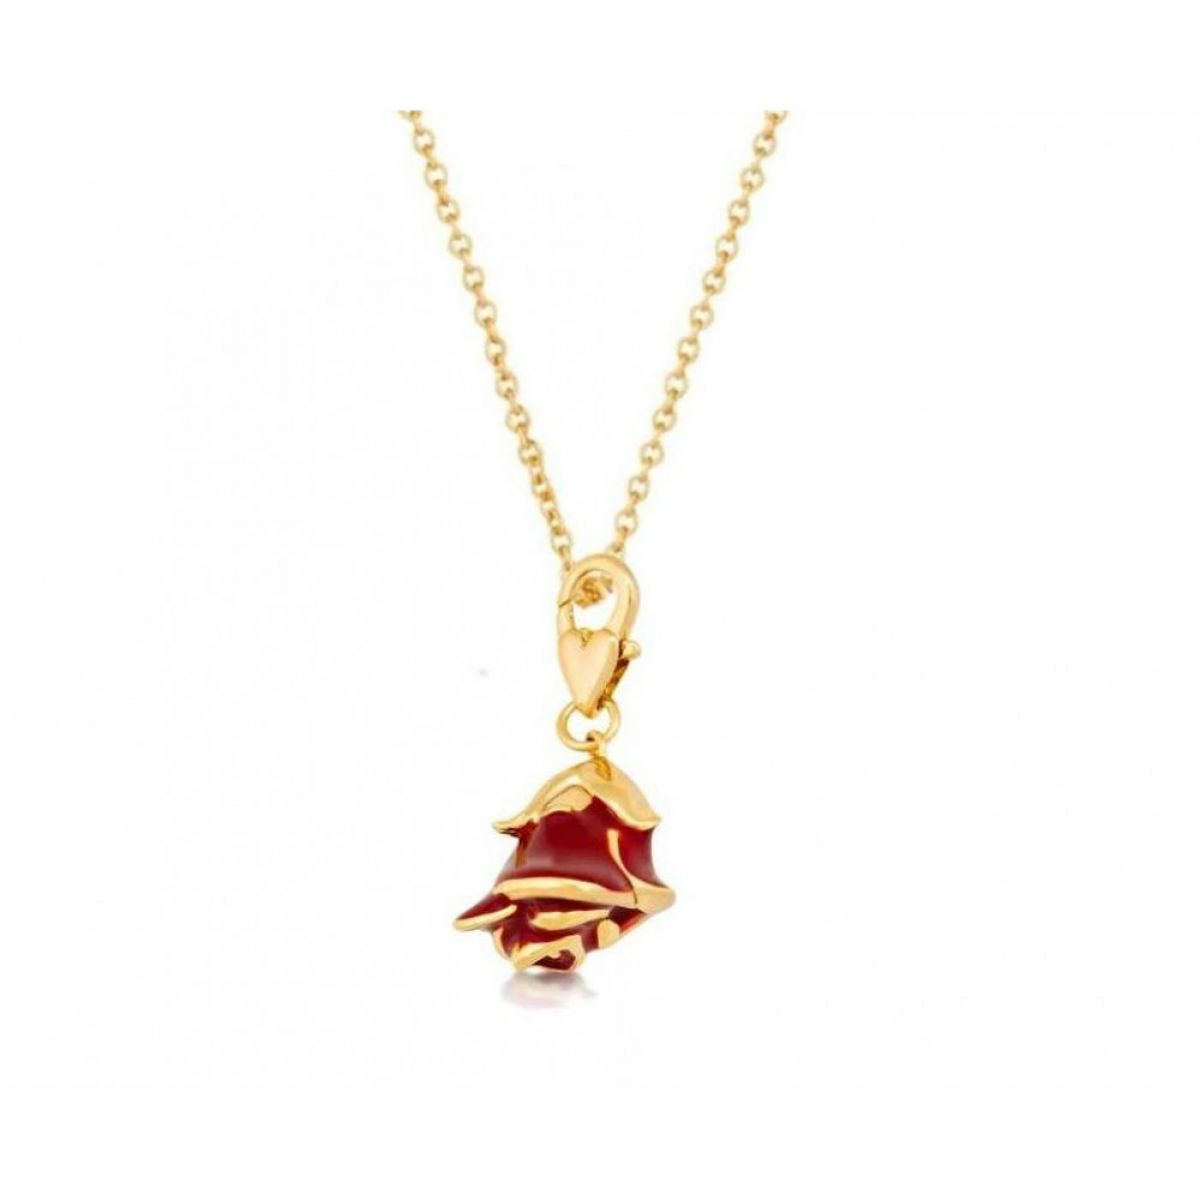 life tree and the of enchanted product pendant disney beast image branch necklace beauty